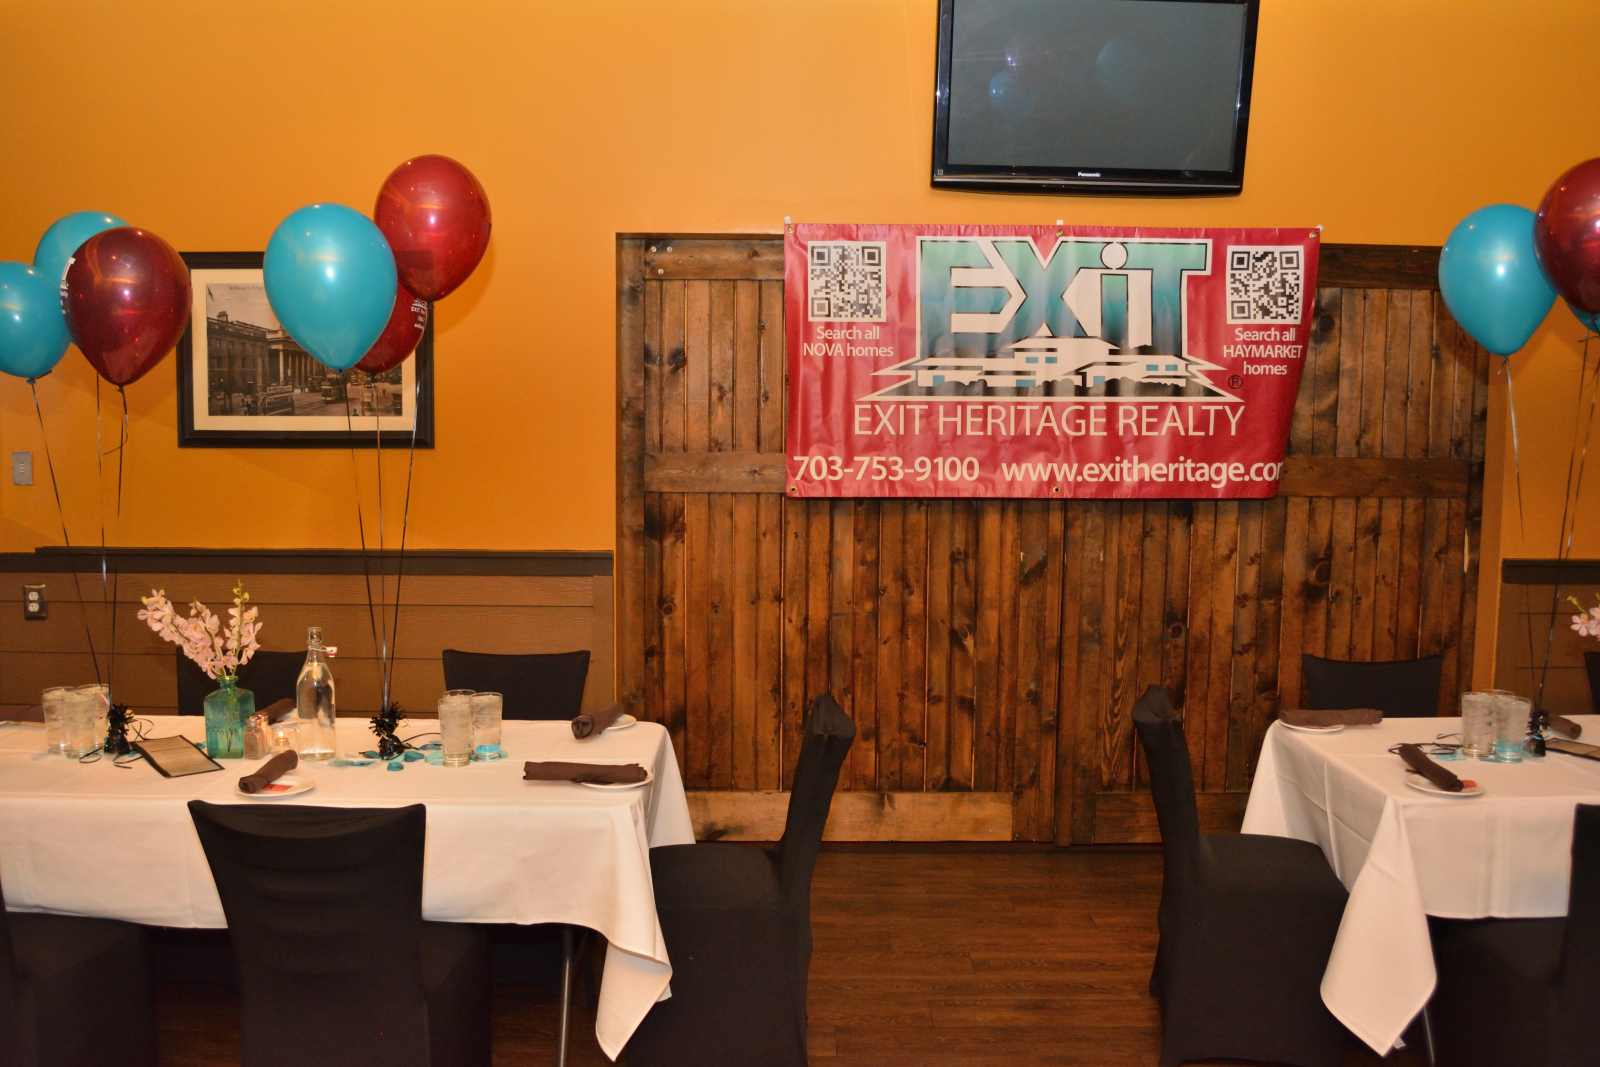 EXIT Heritage Realty Annual Awards Banquet